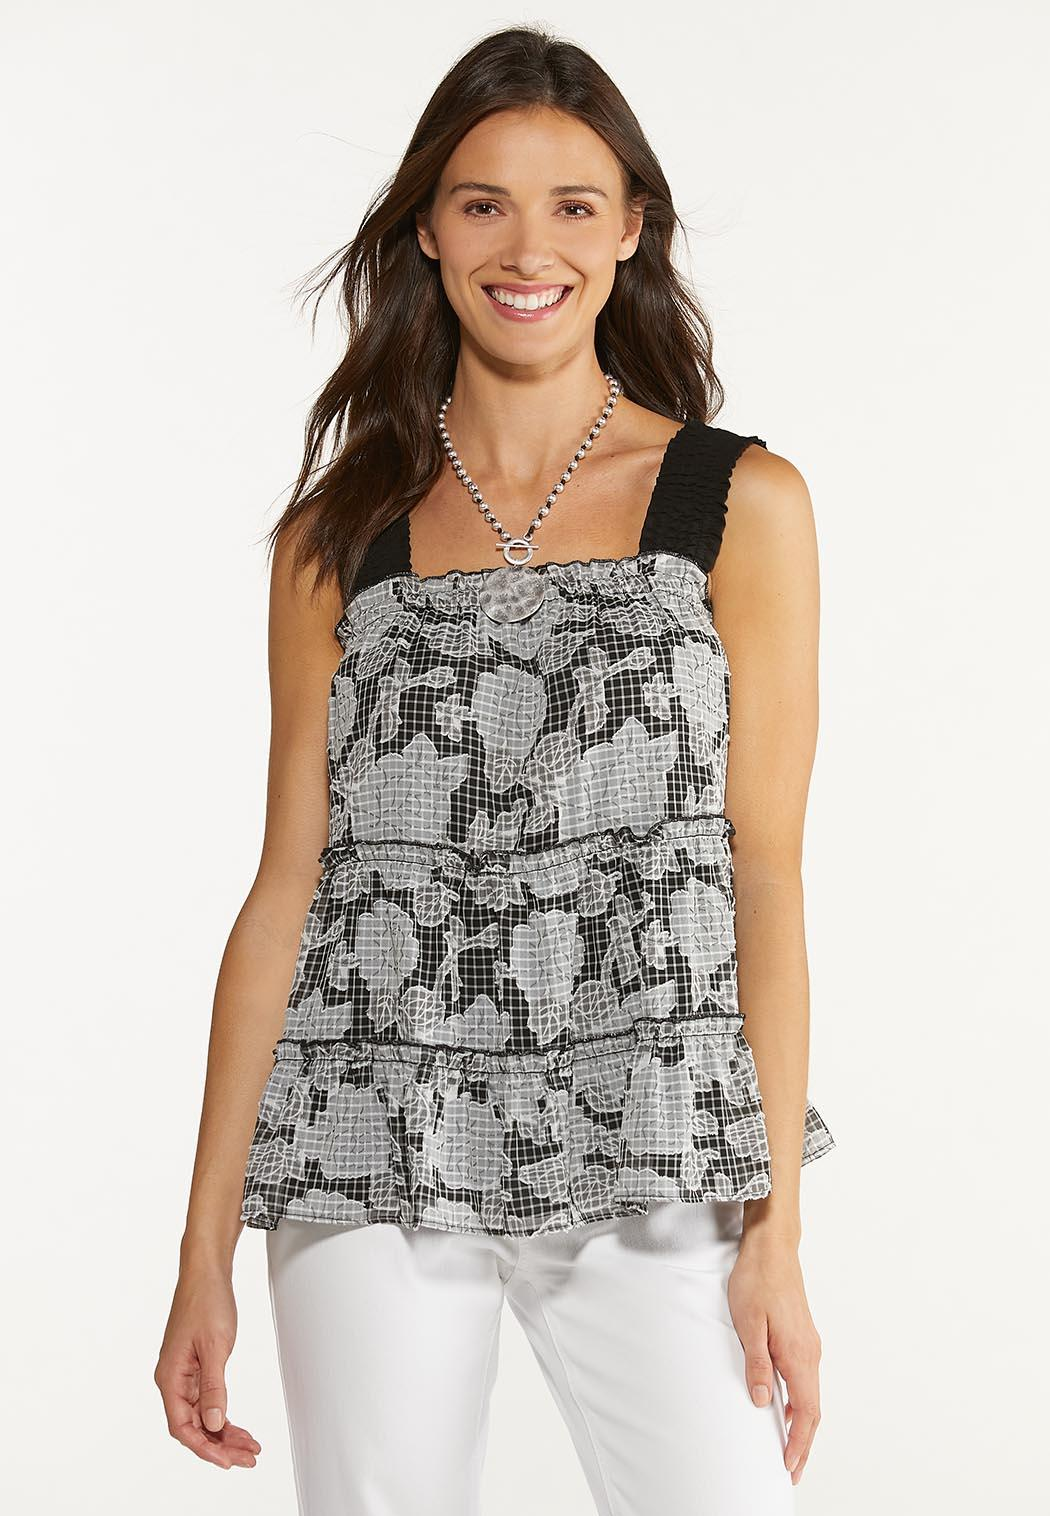 Ruffle Check Floral Top